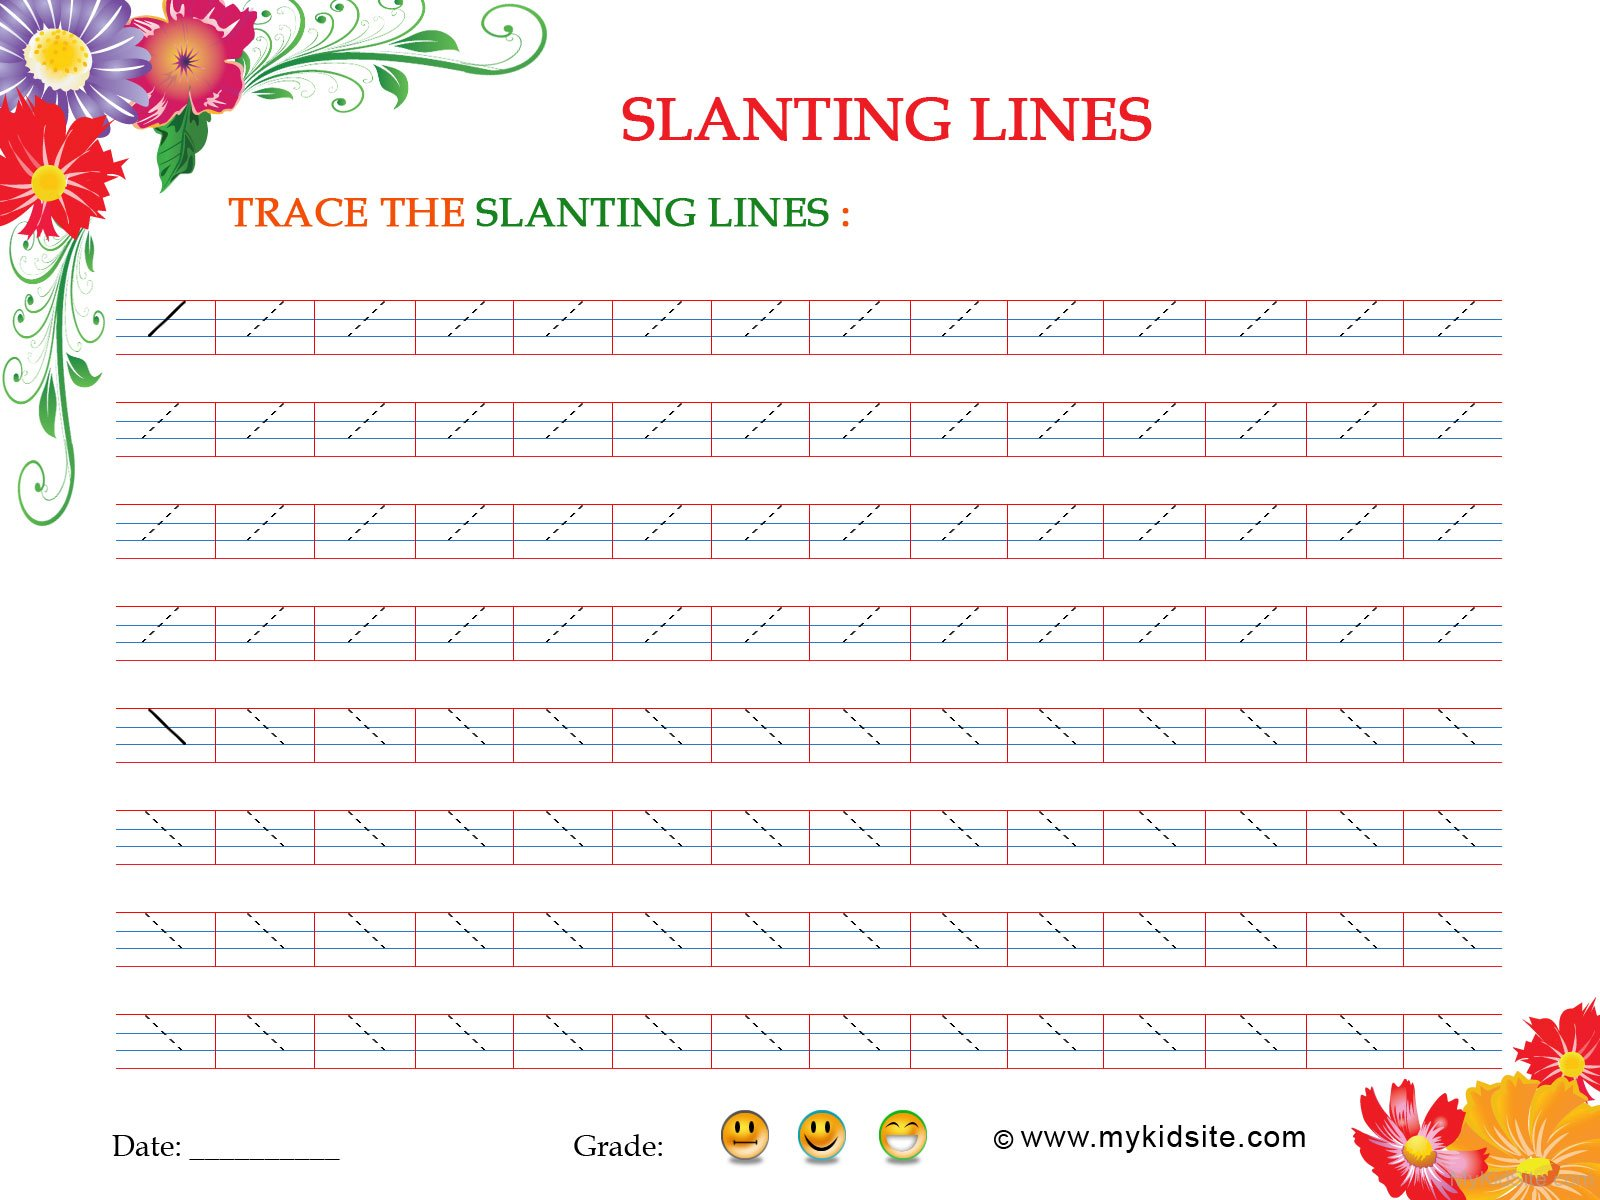 Slanting Lines Worksheet